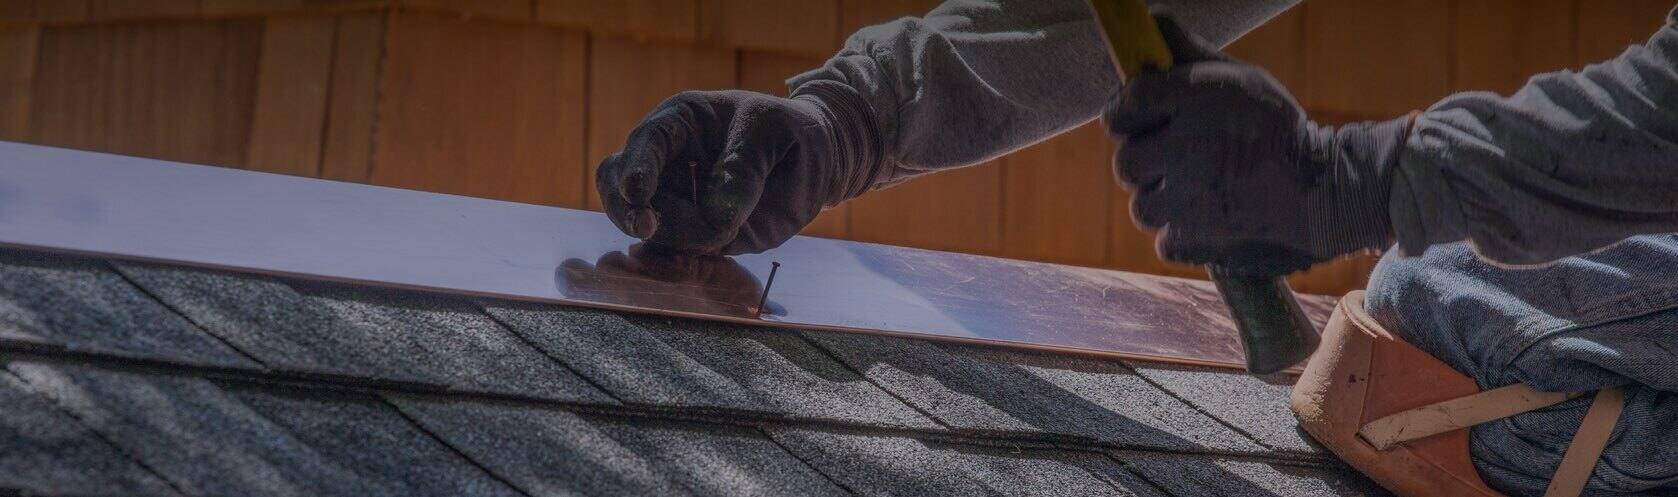 Top-rated roofing work.